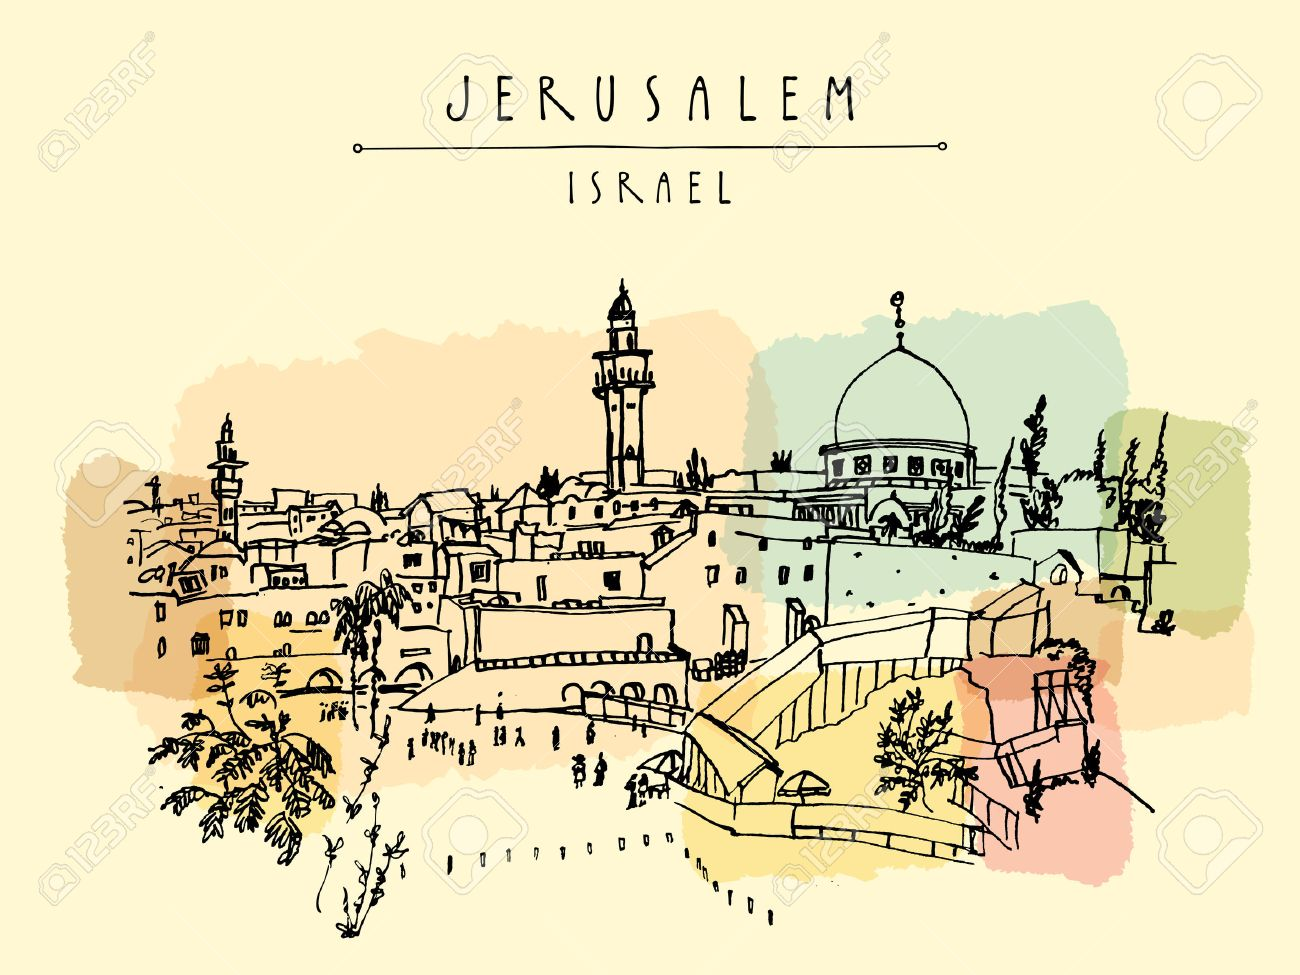 Jerusalem, Israel. City skyline. Wailing wall. Hand drawing. Postcard poster template. Jerusalem city view postcard with hand lettering - 66244981